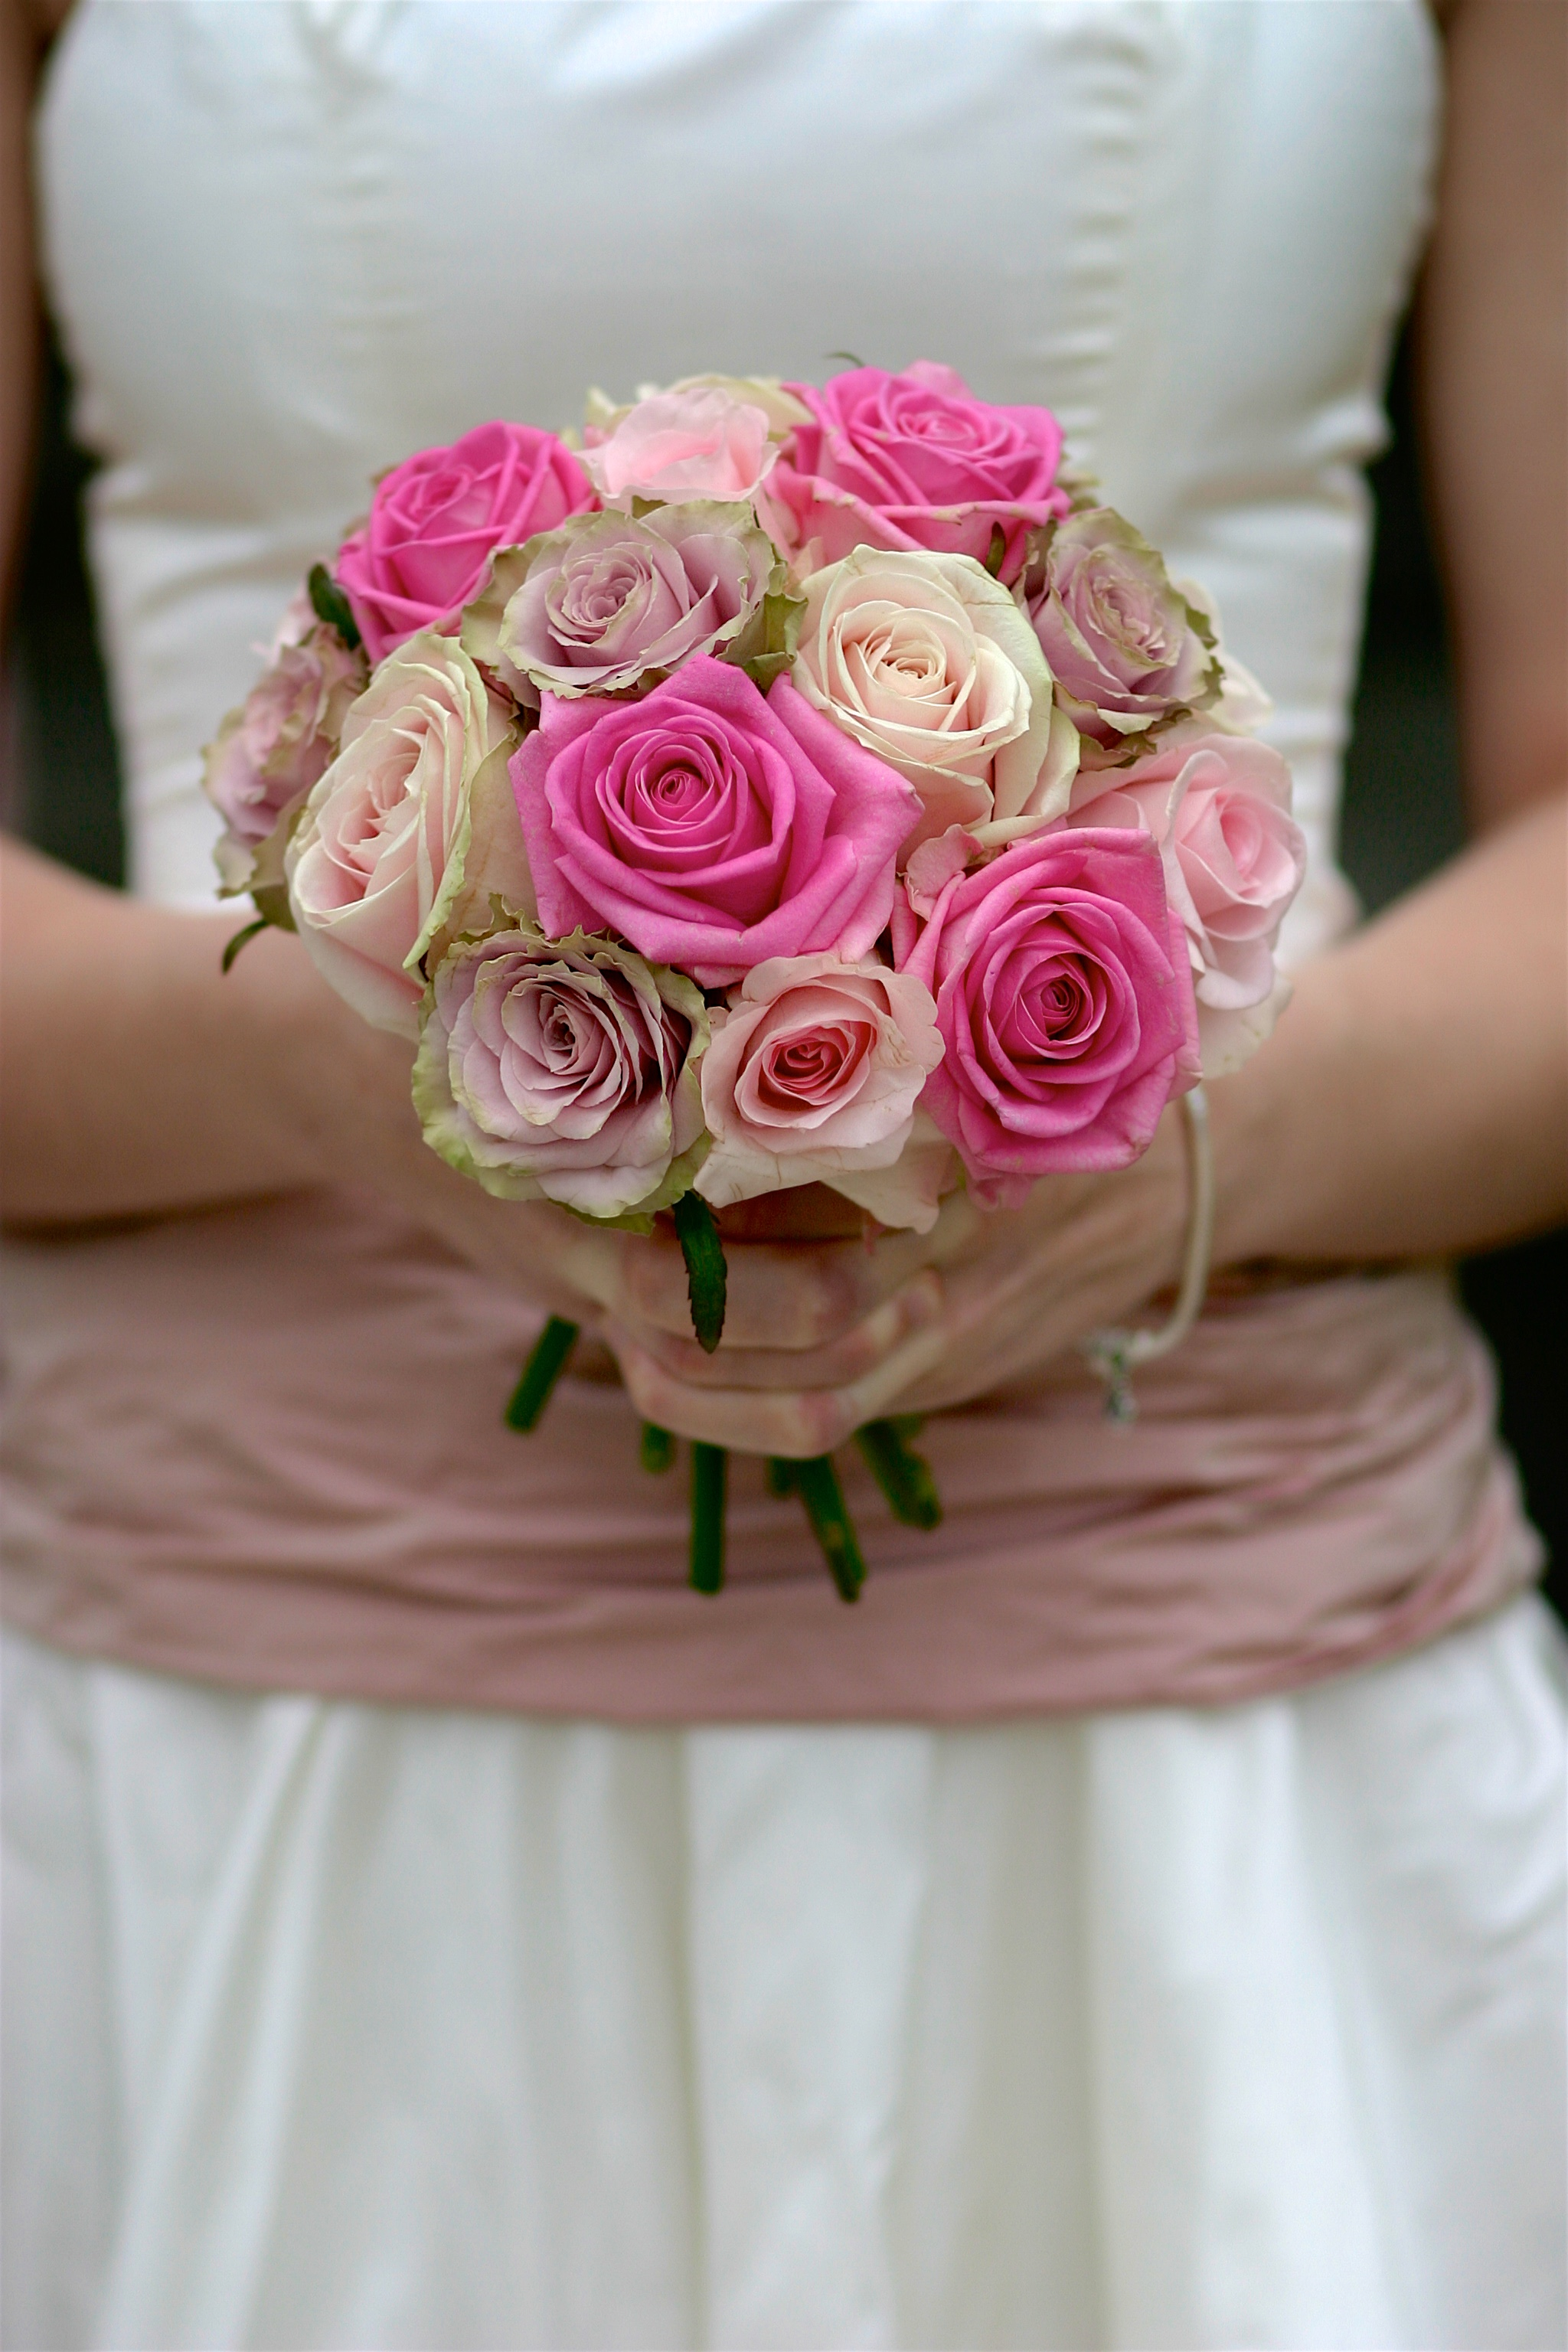 Bridesmaid with bouquet of flowers